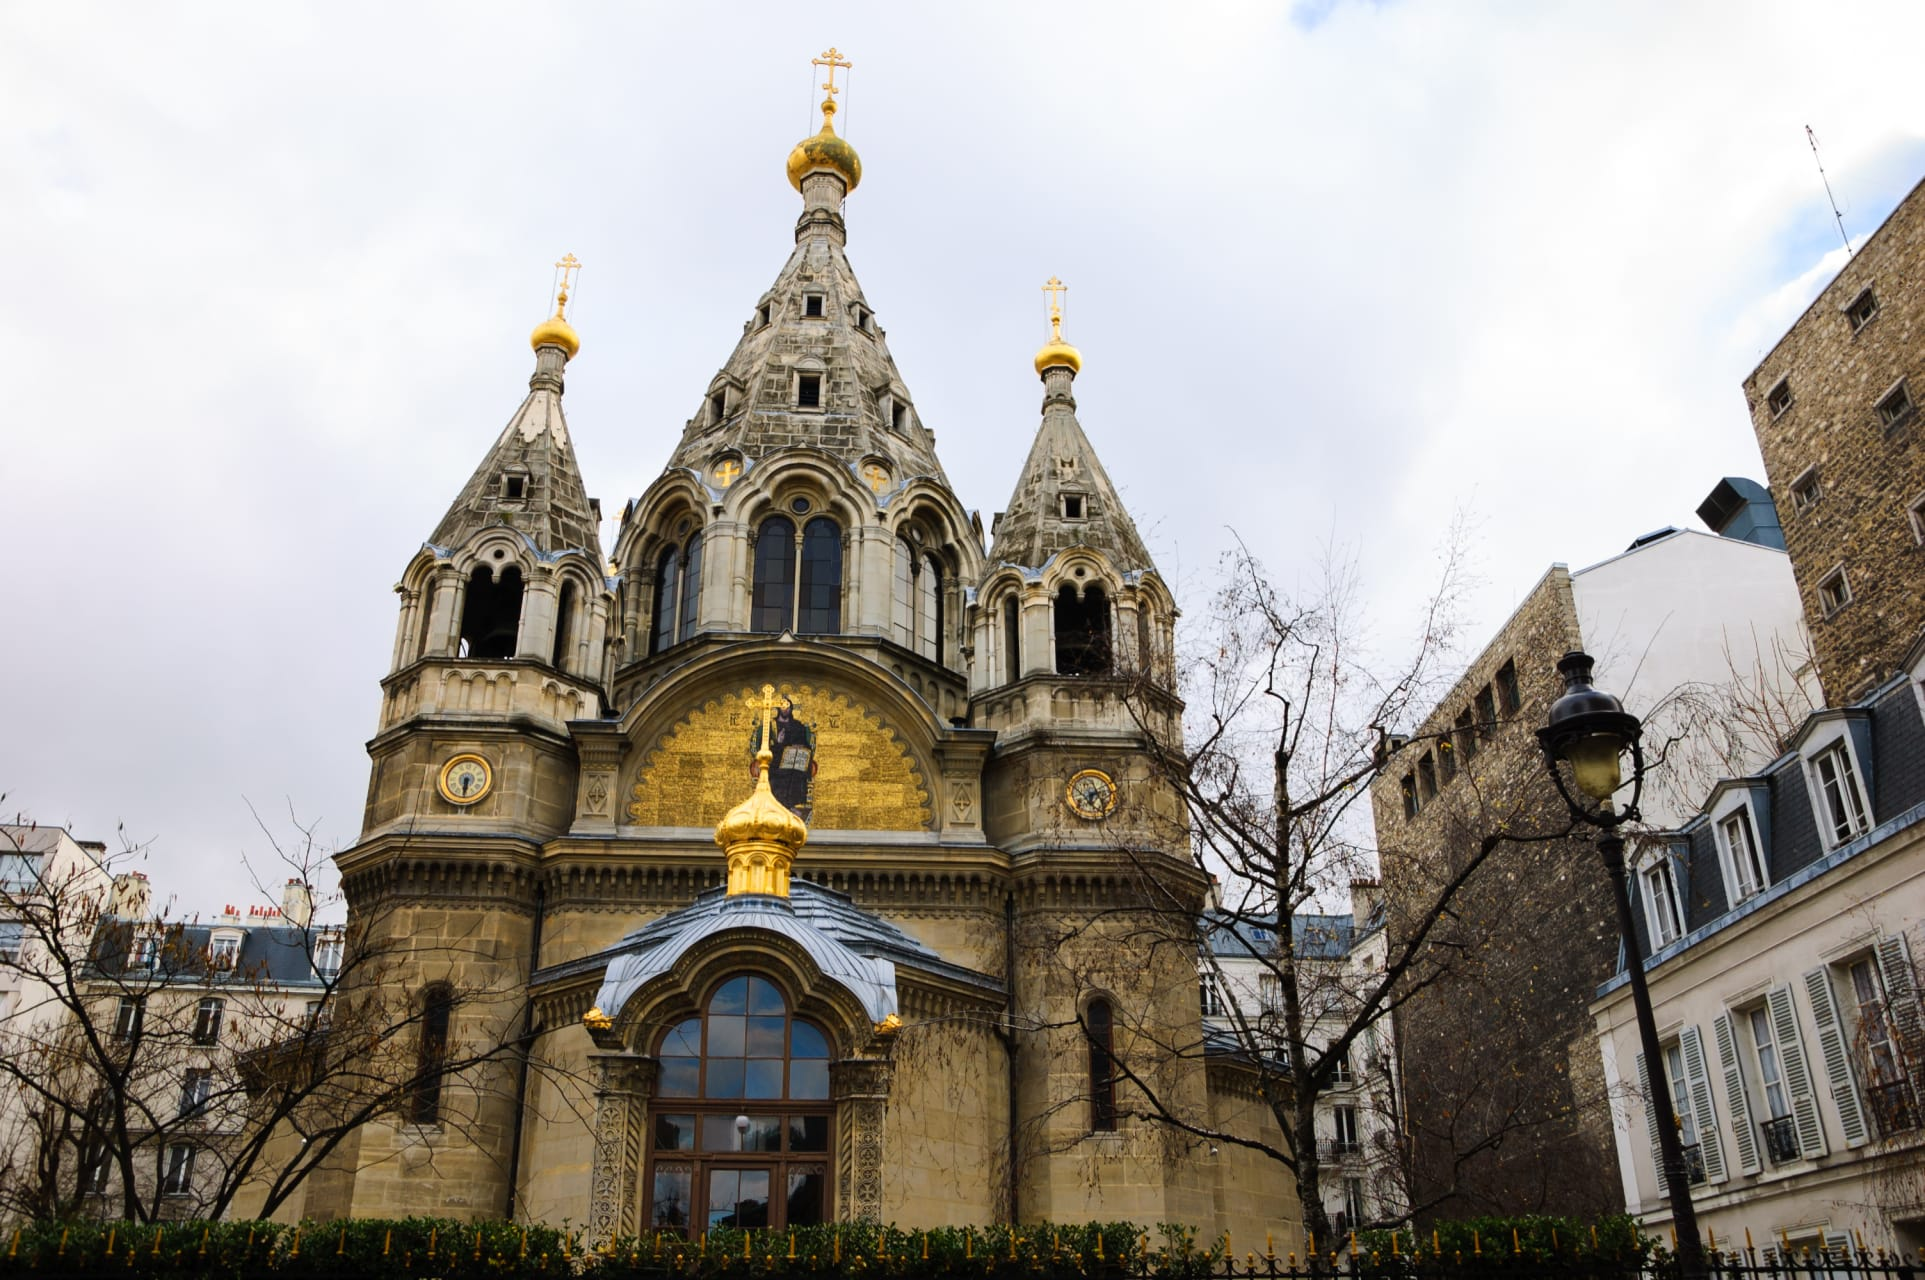 Paris - 10 Most Incredible Churches in Paris: N°10 The Russian Cathedral of Saint Alexander Nevsky